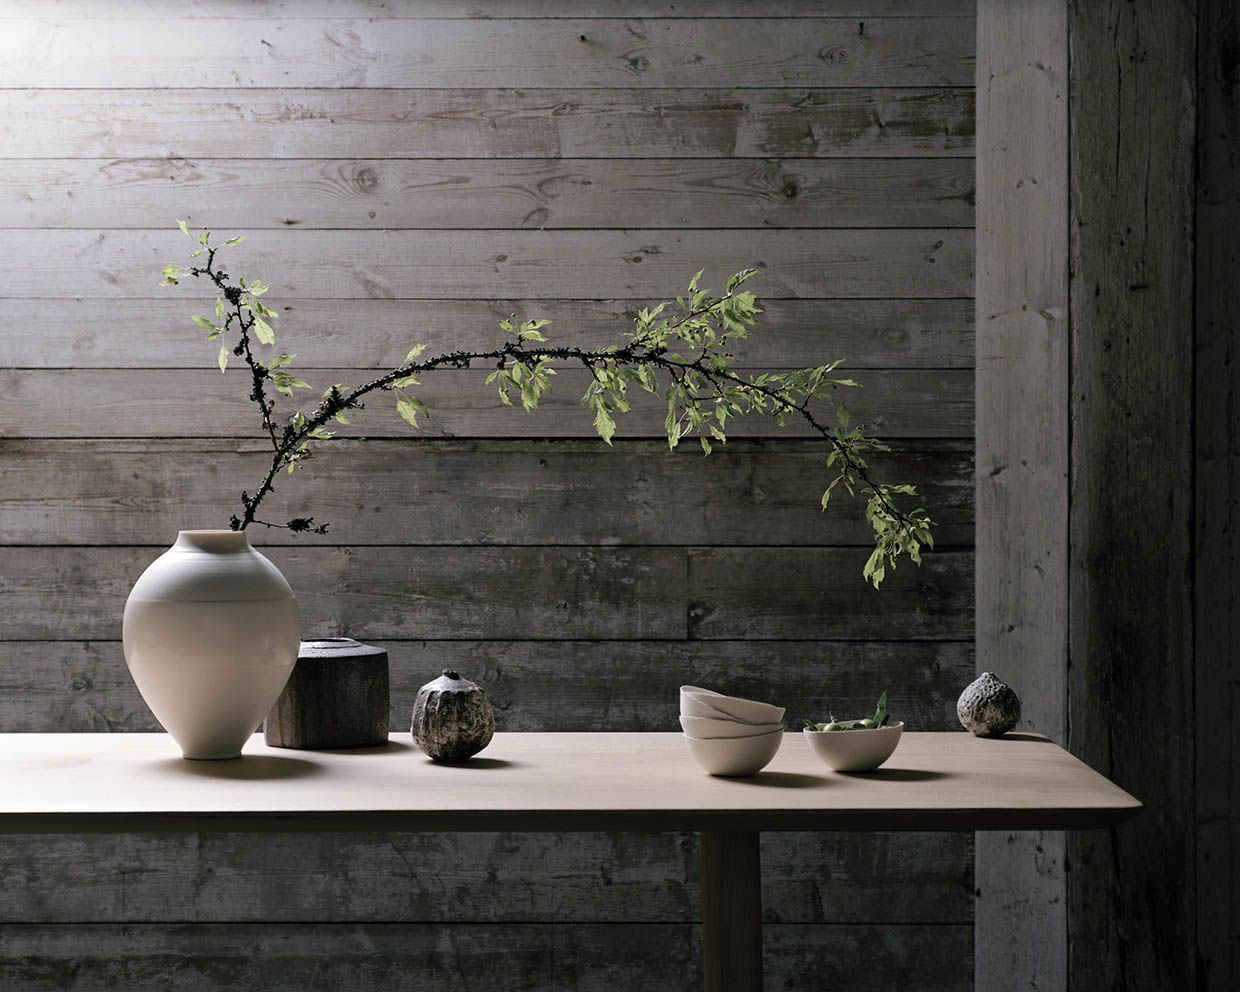 Sania Pell interior stylist for Maud & Mable craft and ceramics gallery, photography by Rory Gardiner